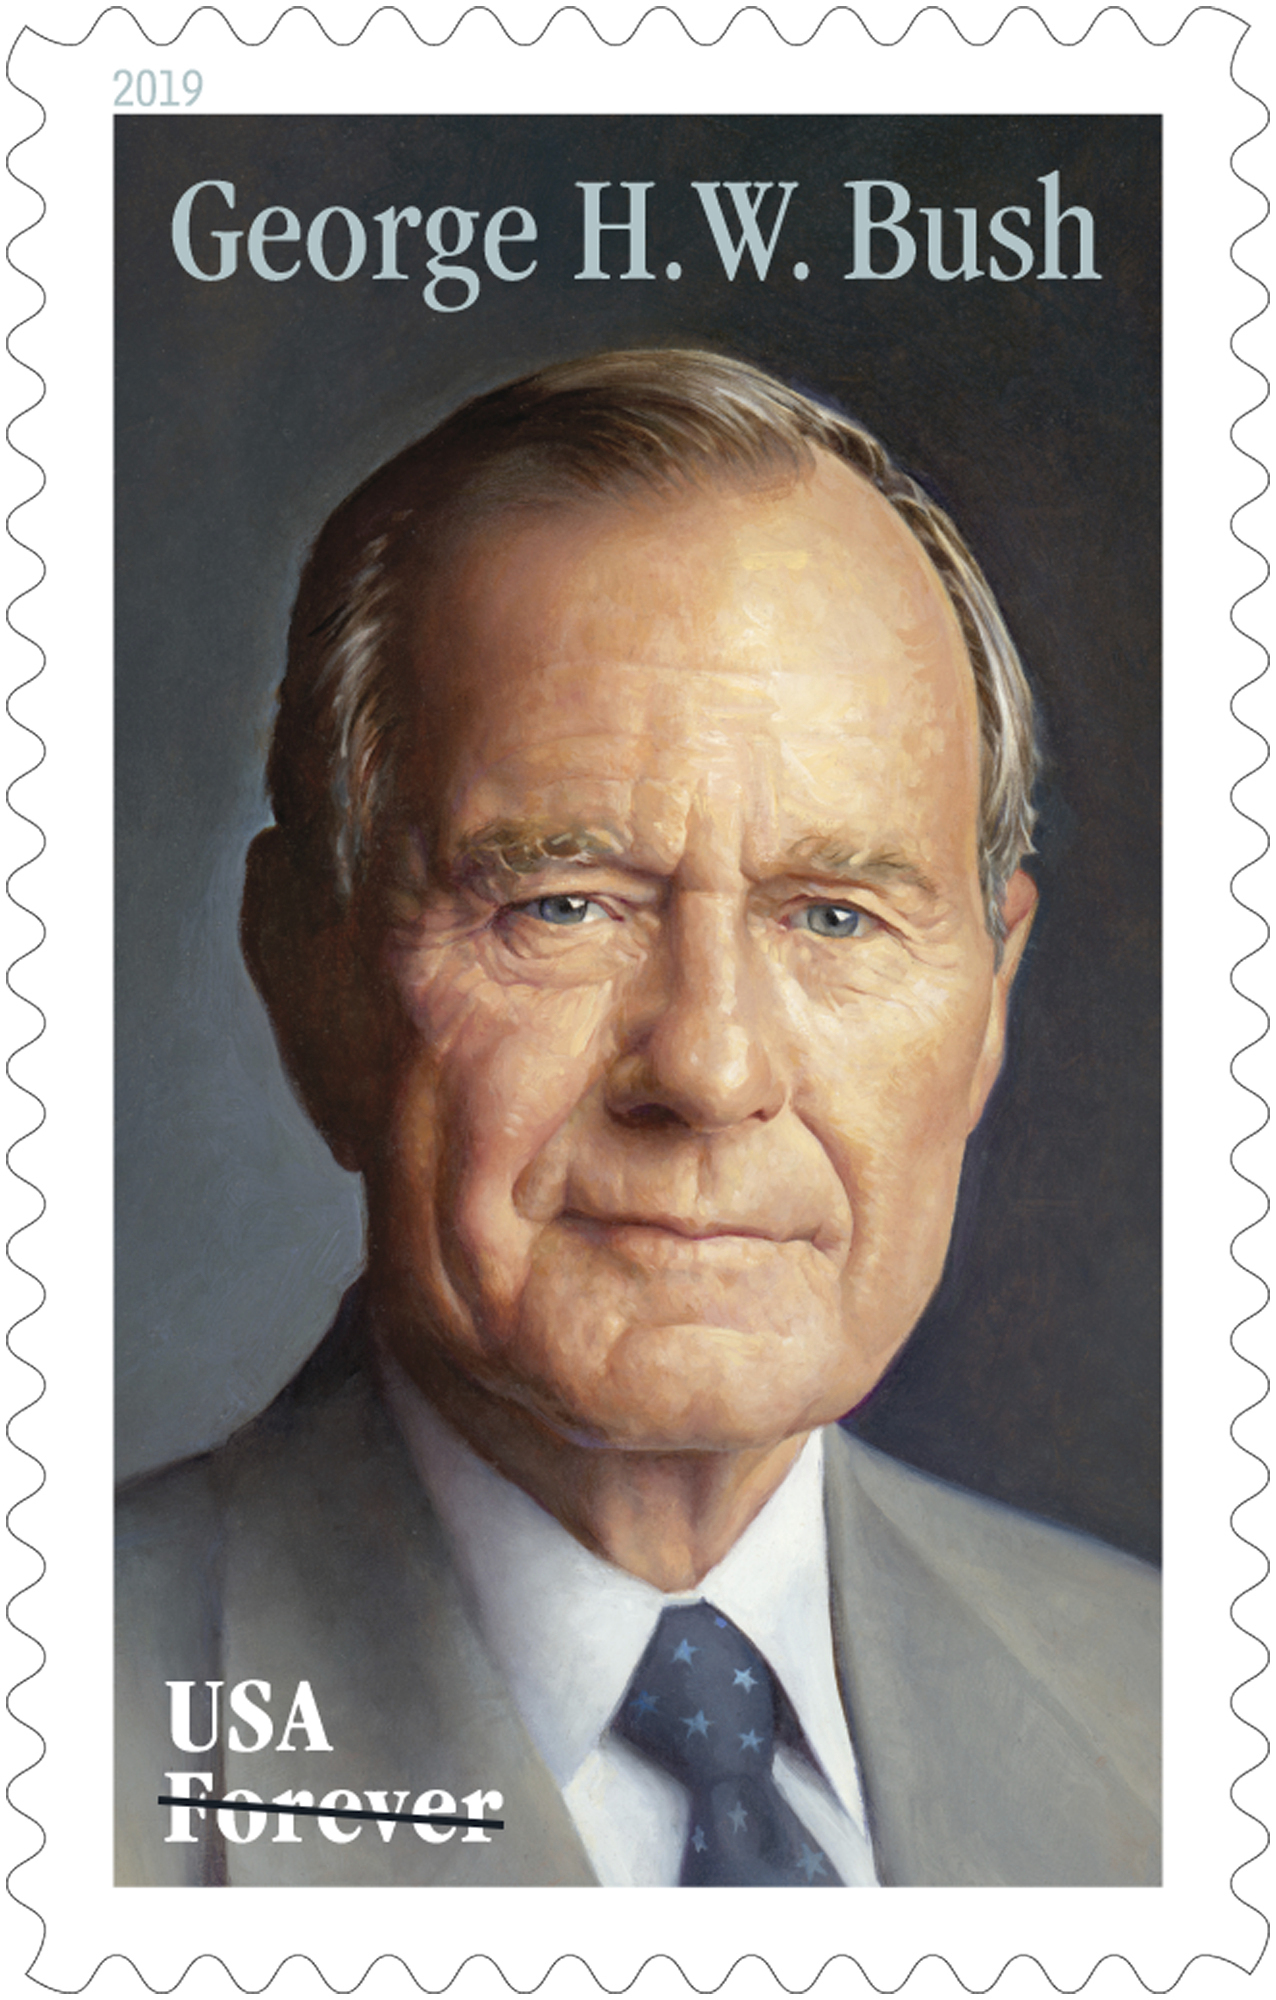 George HW Bush Stamp_1560371233213